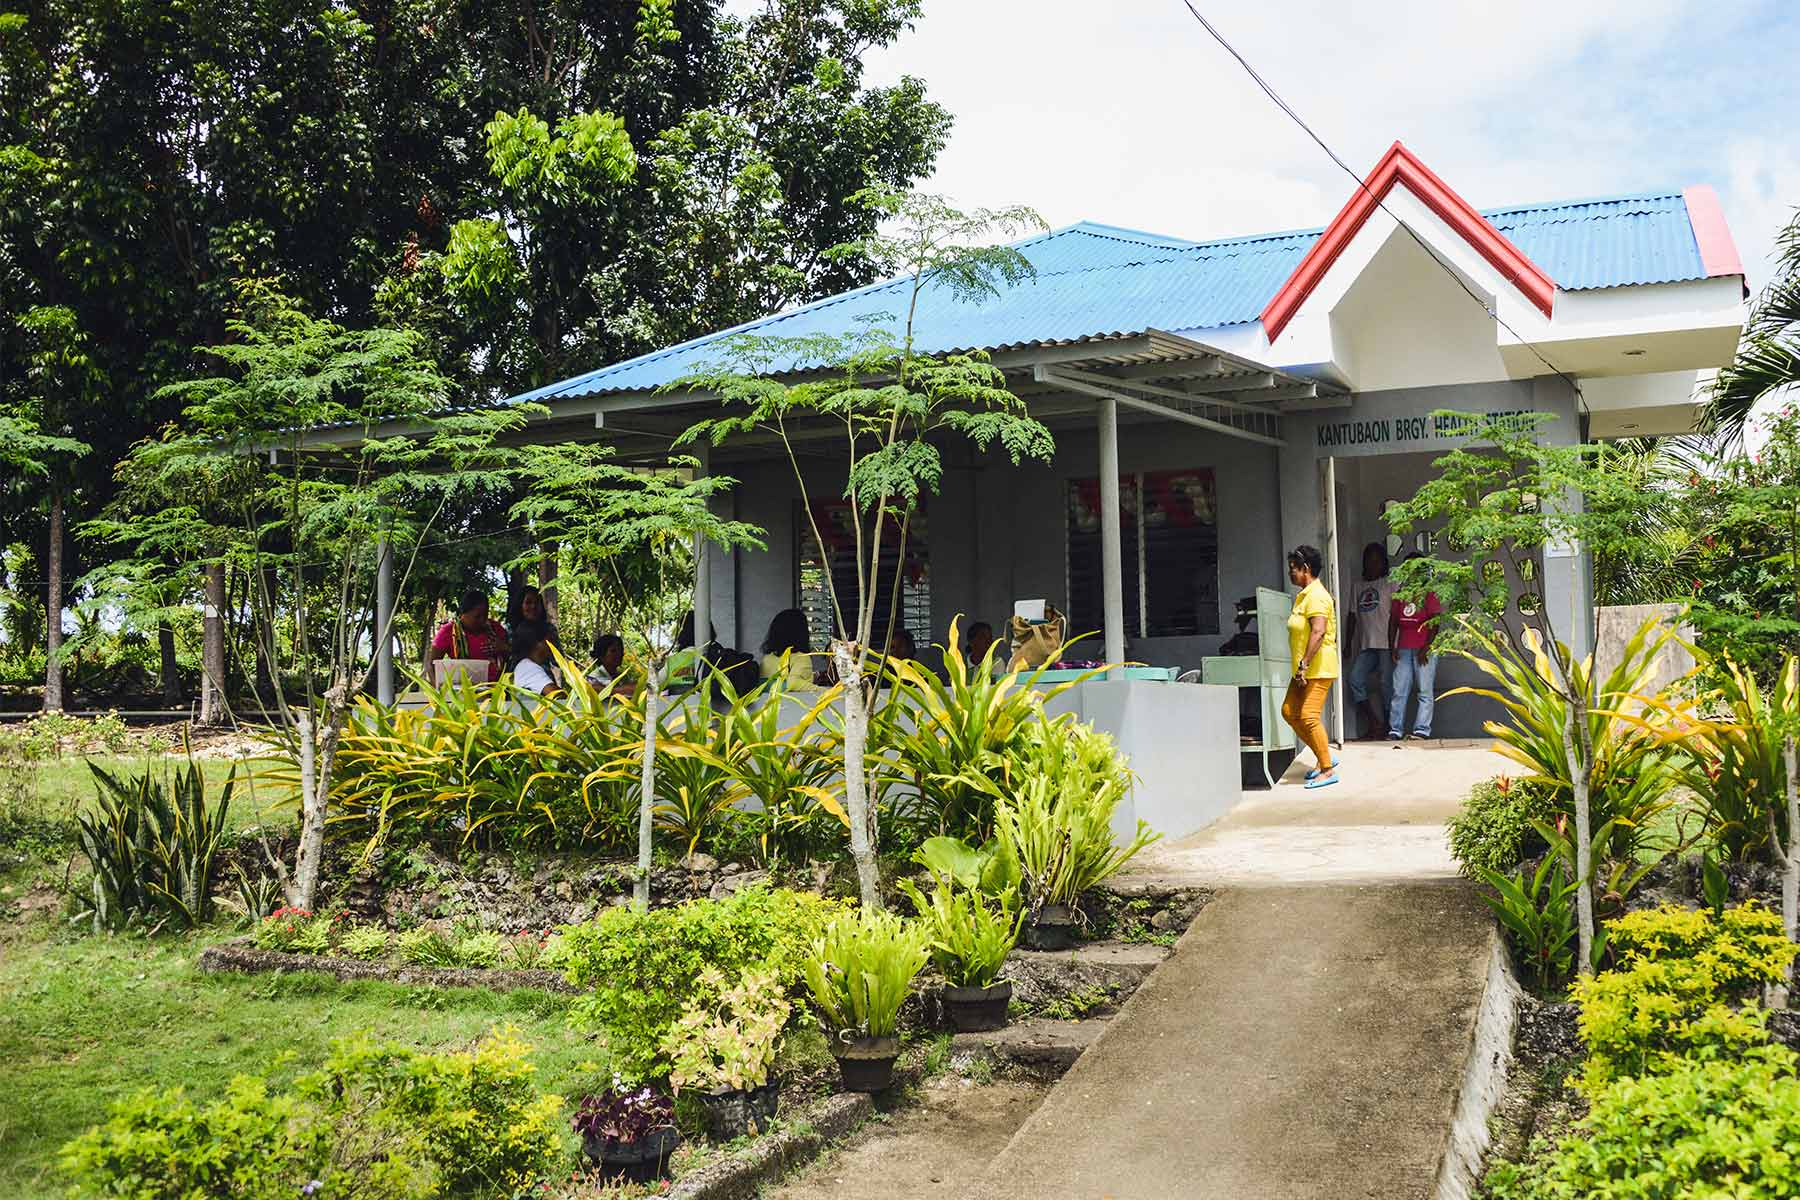 In the Philippines we have helped to rebuild and expand 84 health facilities damaged by Typhoon Haiyan